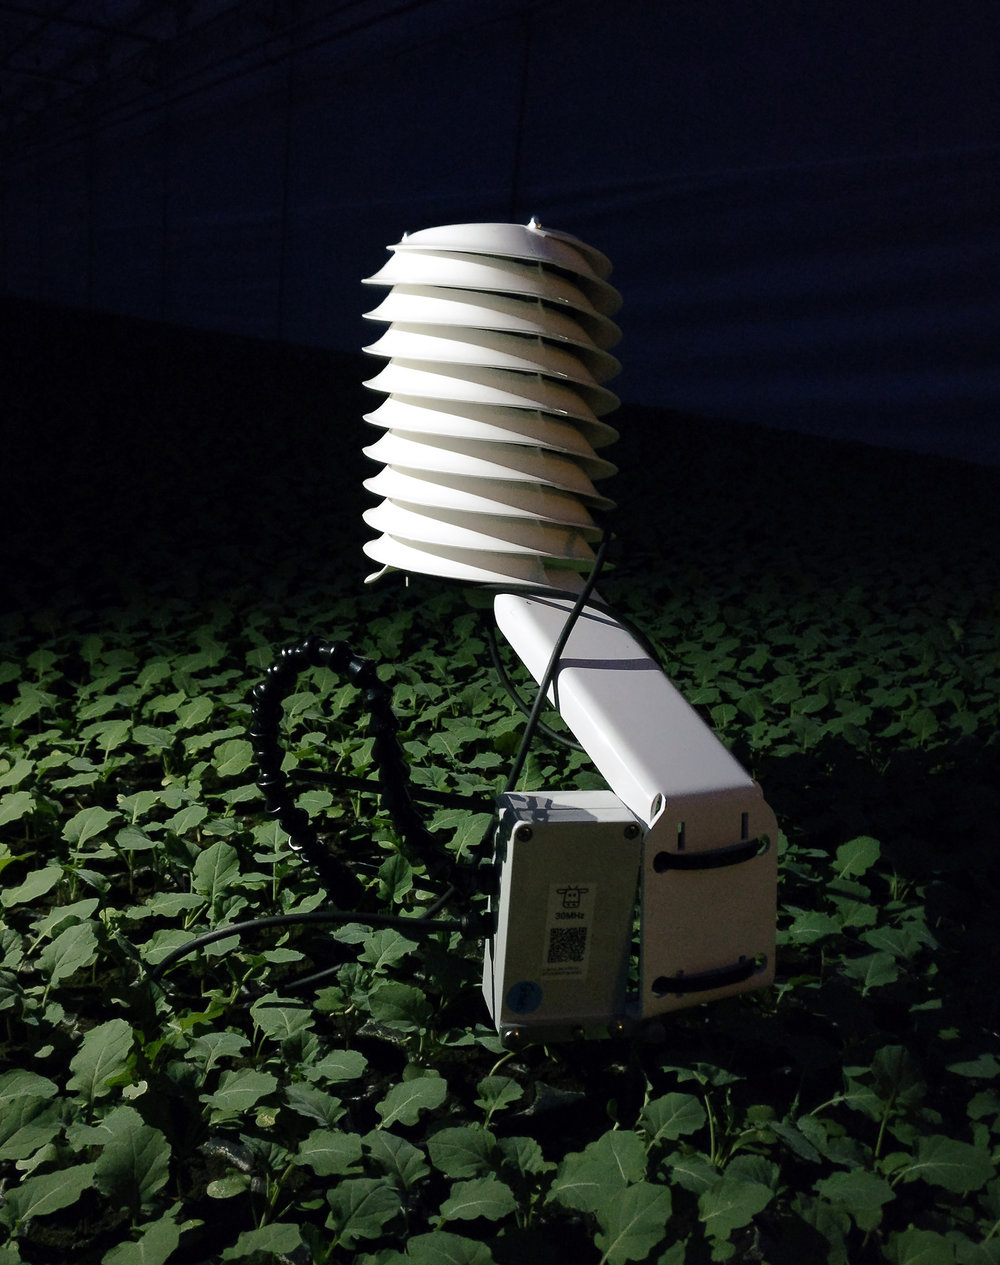 MeteoShield Professional in an agricultural application